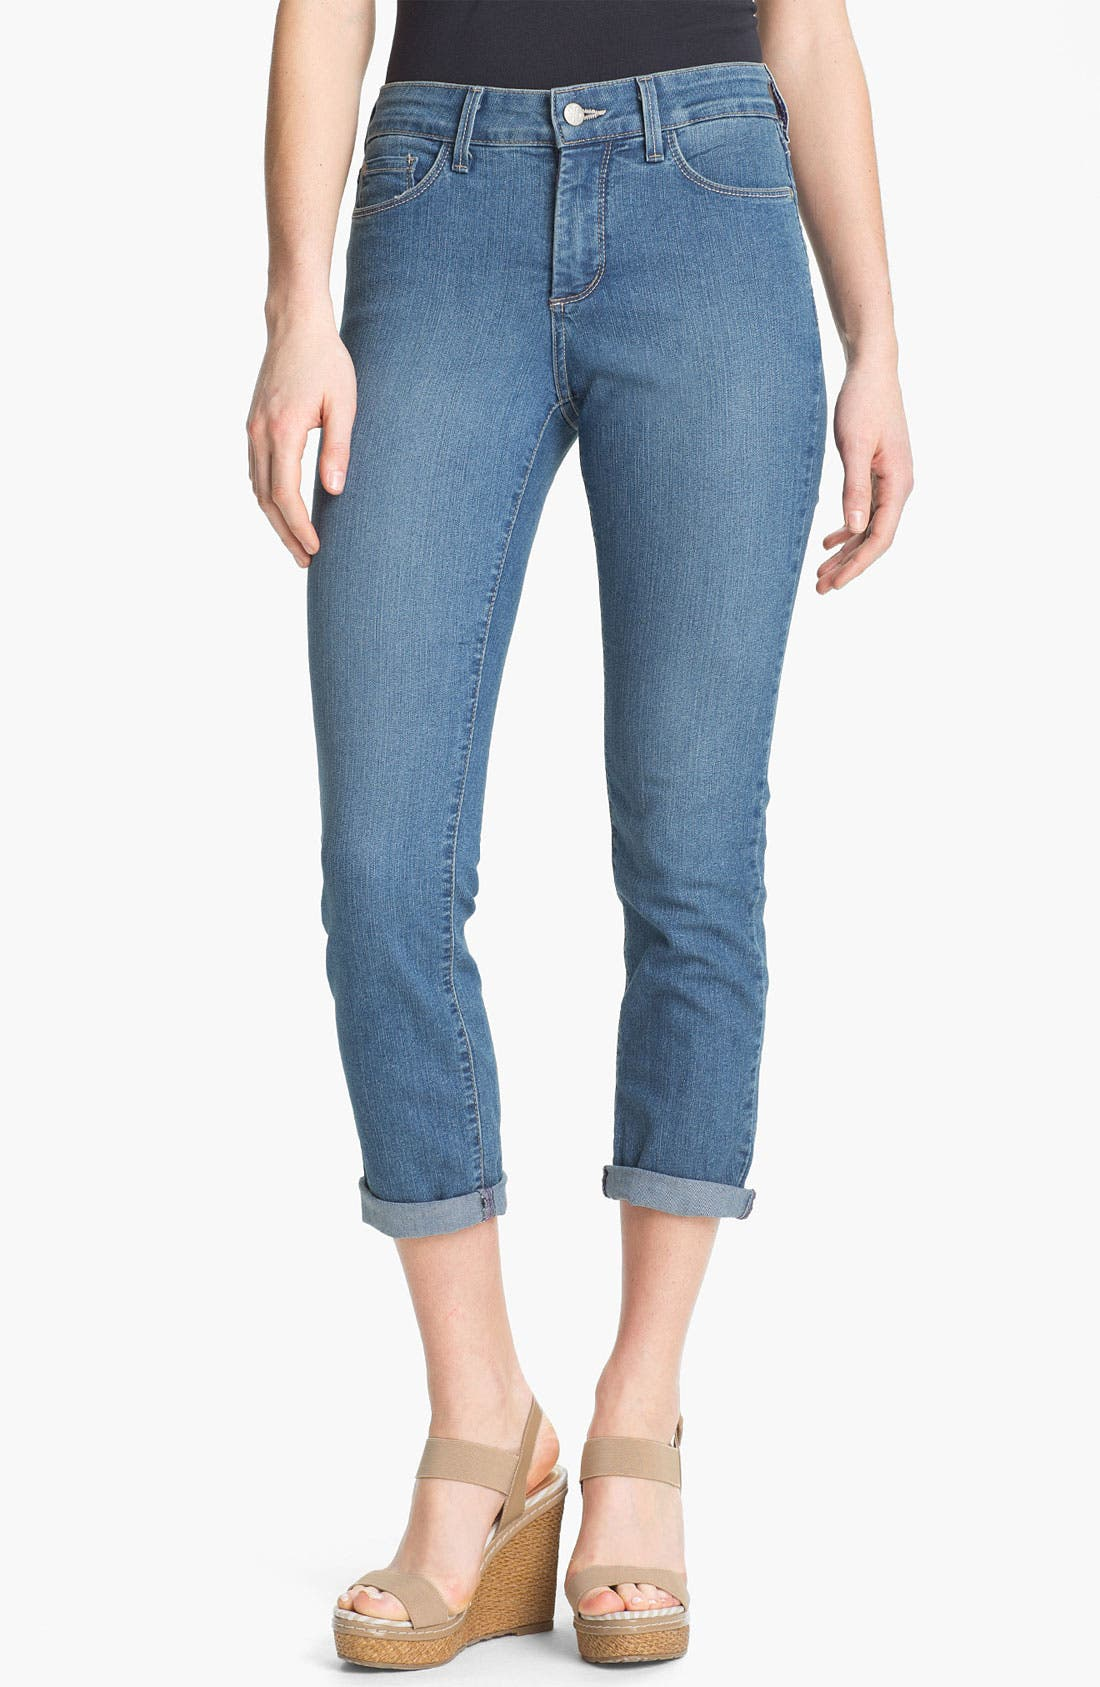 Alternate Image 1 Selected - NYDJ 'Tanya' Cuffed Stretch Boyfriend Jeans (Petite)